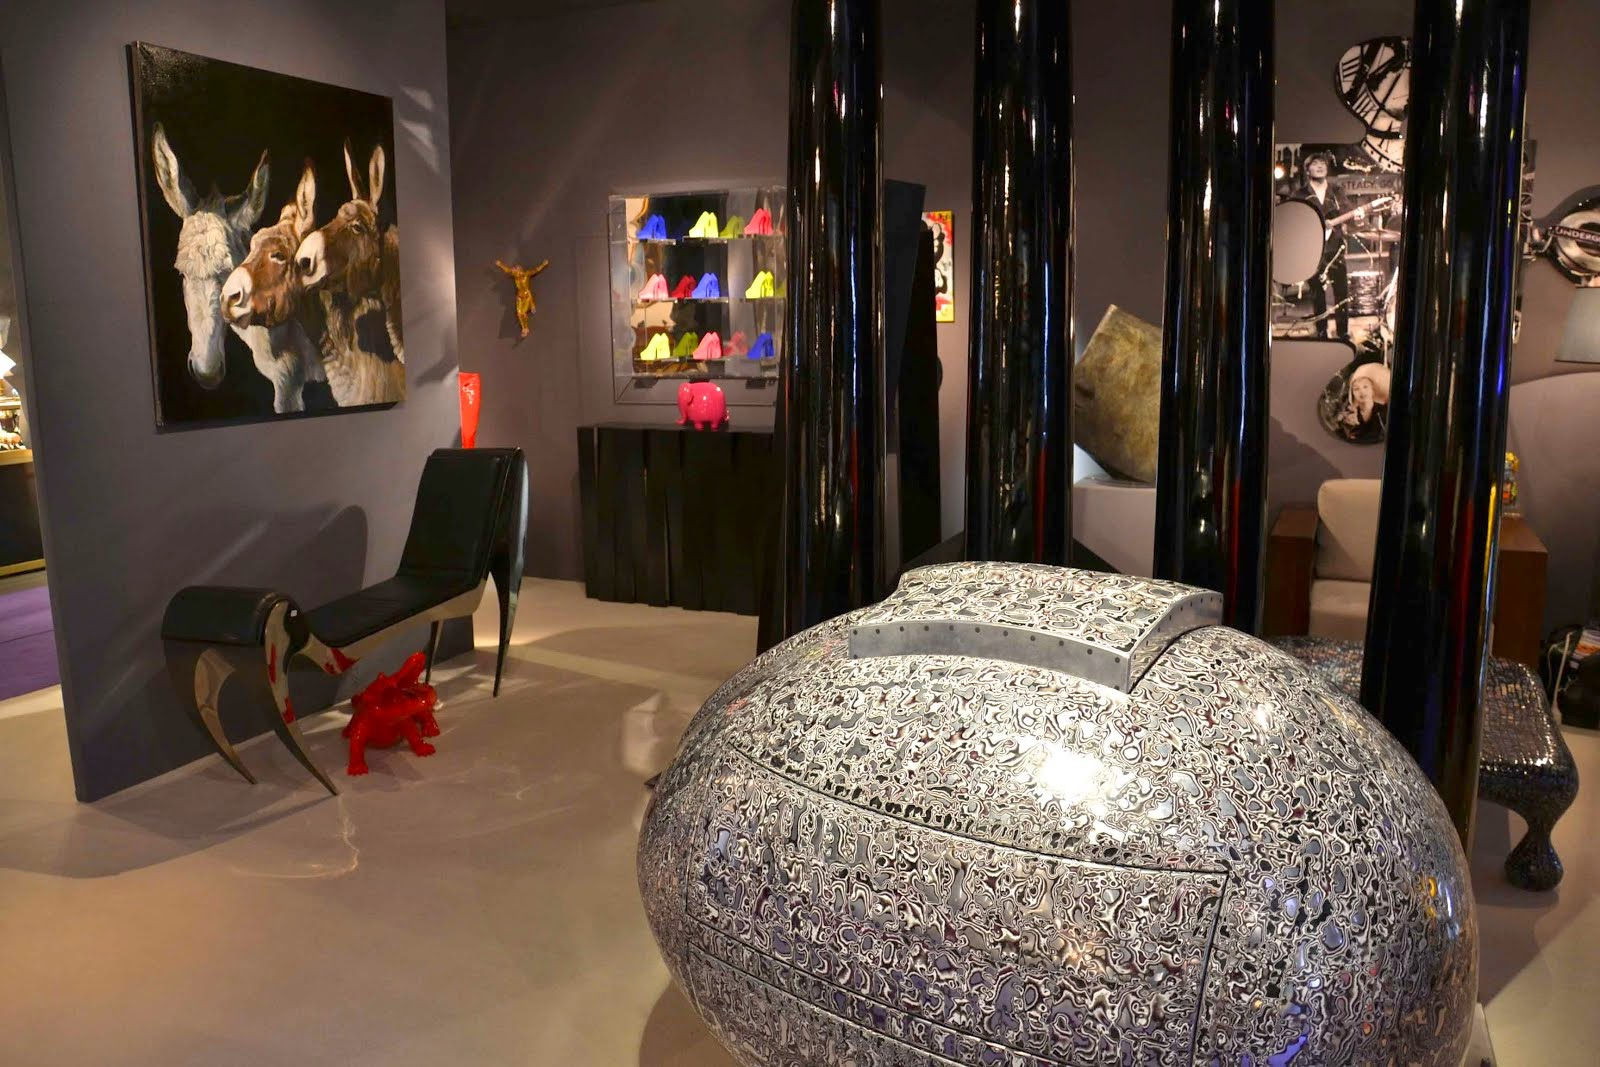 PARIS 8ème : CAPTON AU SALON DU 8ème - ANTIQUITÉS & ART CONTEMPORAIN AVEC LA GALERIE LE FLOCH